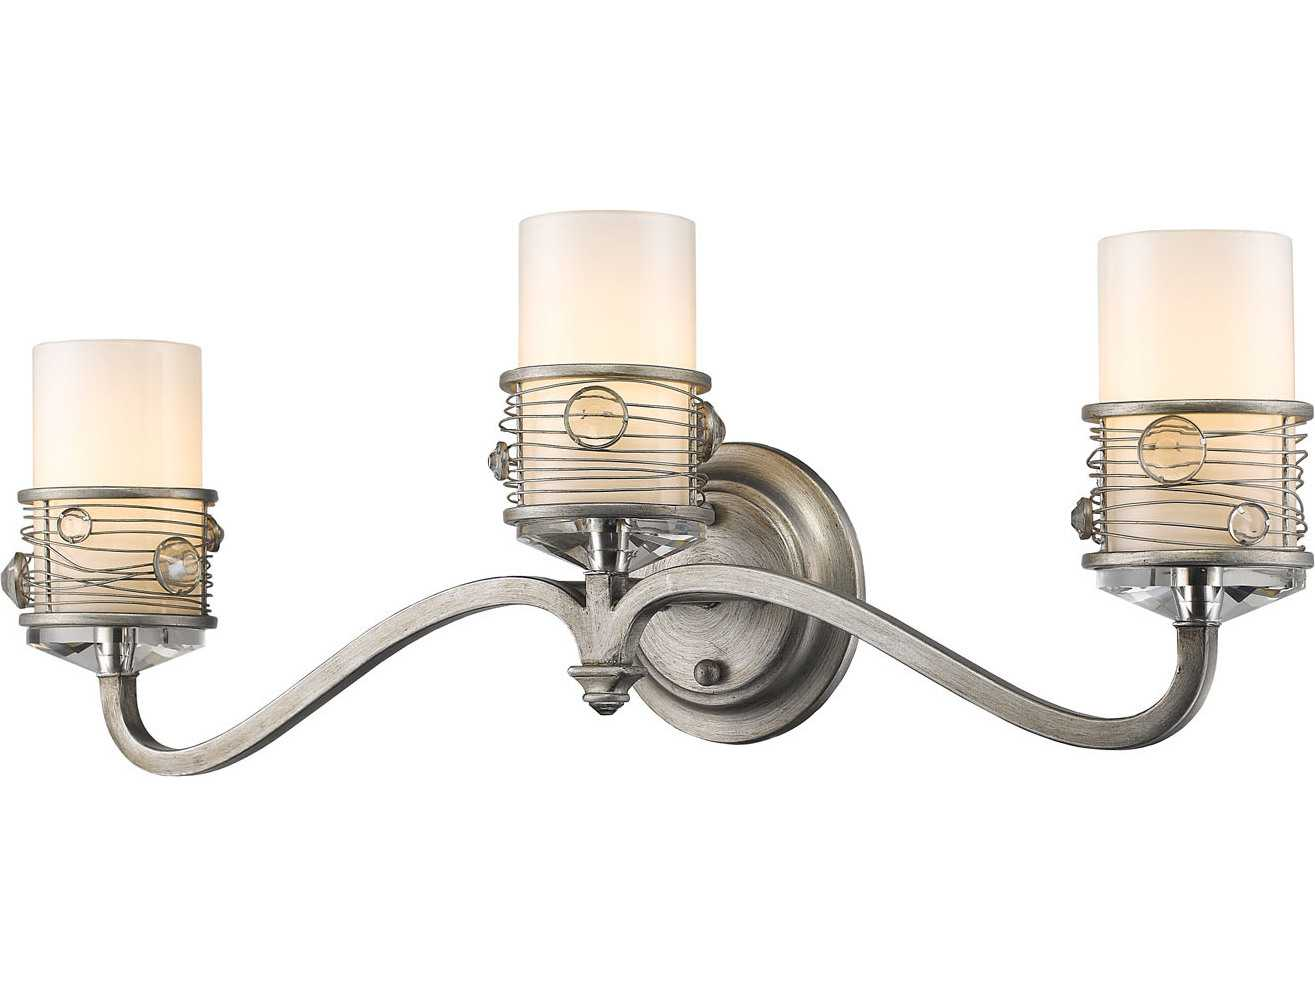 Vanity Lights With Crystal Accents : Golden Lighting Joia Peruvian Silver Three-Light Vanity Light with Frosted Clear Glass / Crystal ...